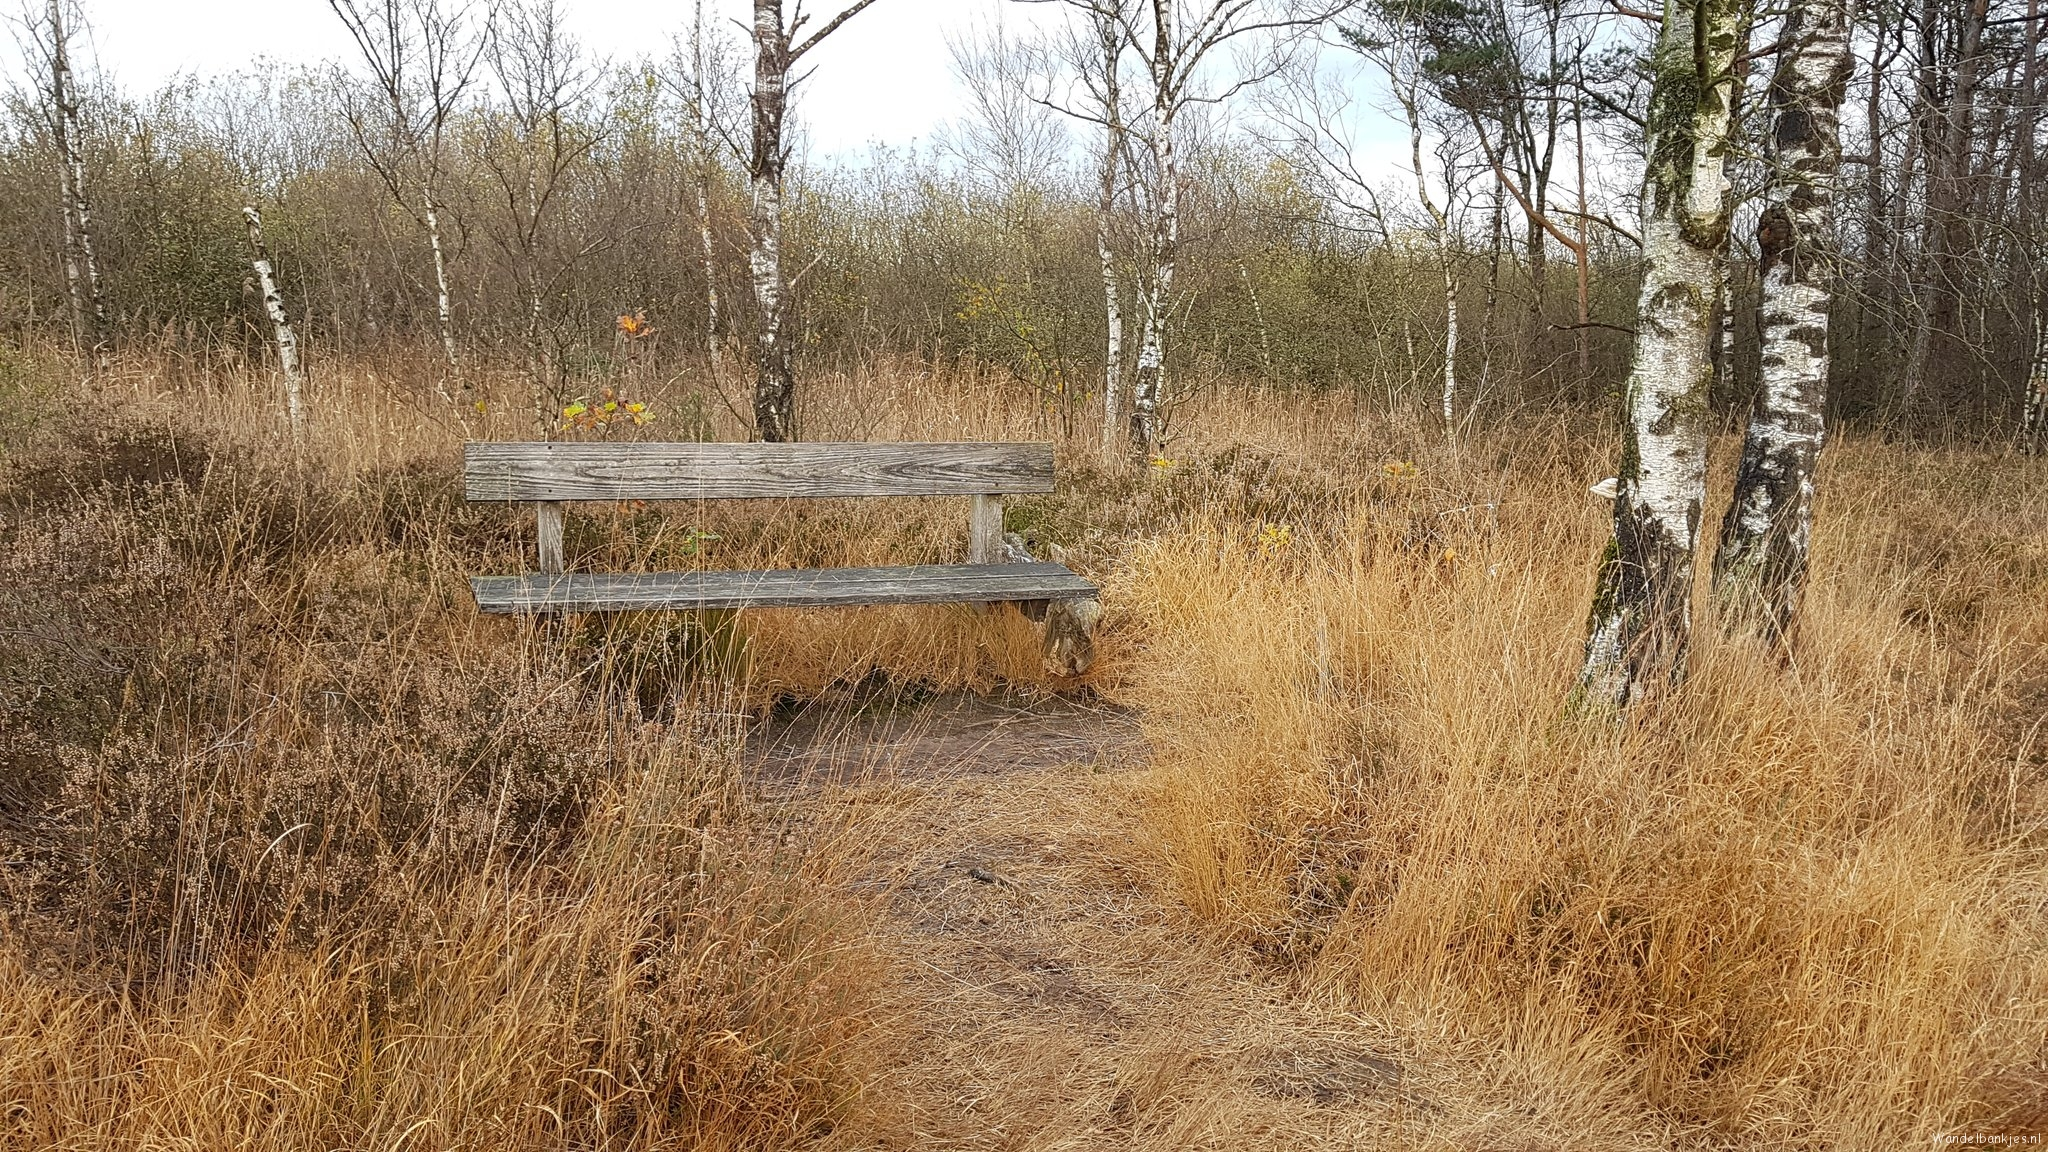 rt-sthart80-walking-benches-in-the-meddoseveen-te-winterswijk-achterhoek-httpst-codkehmheltg